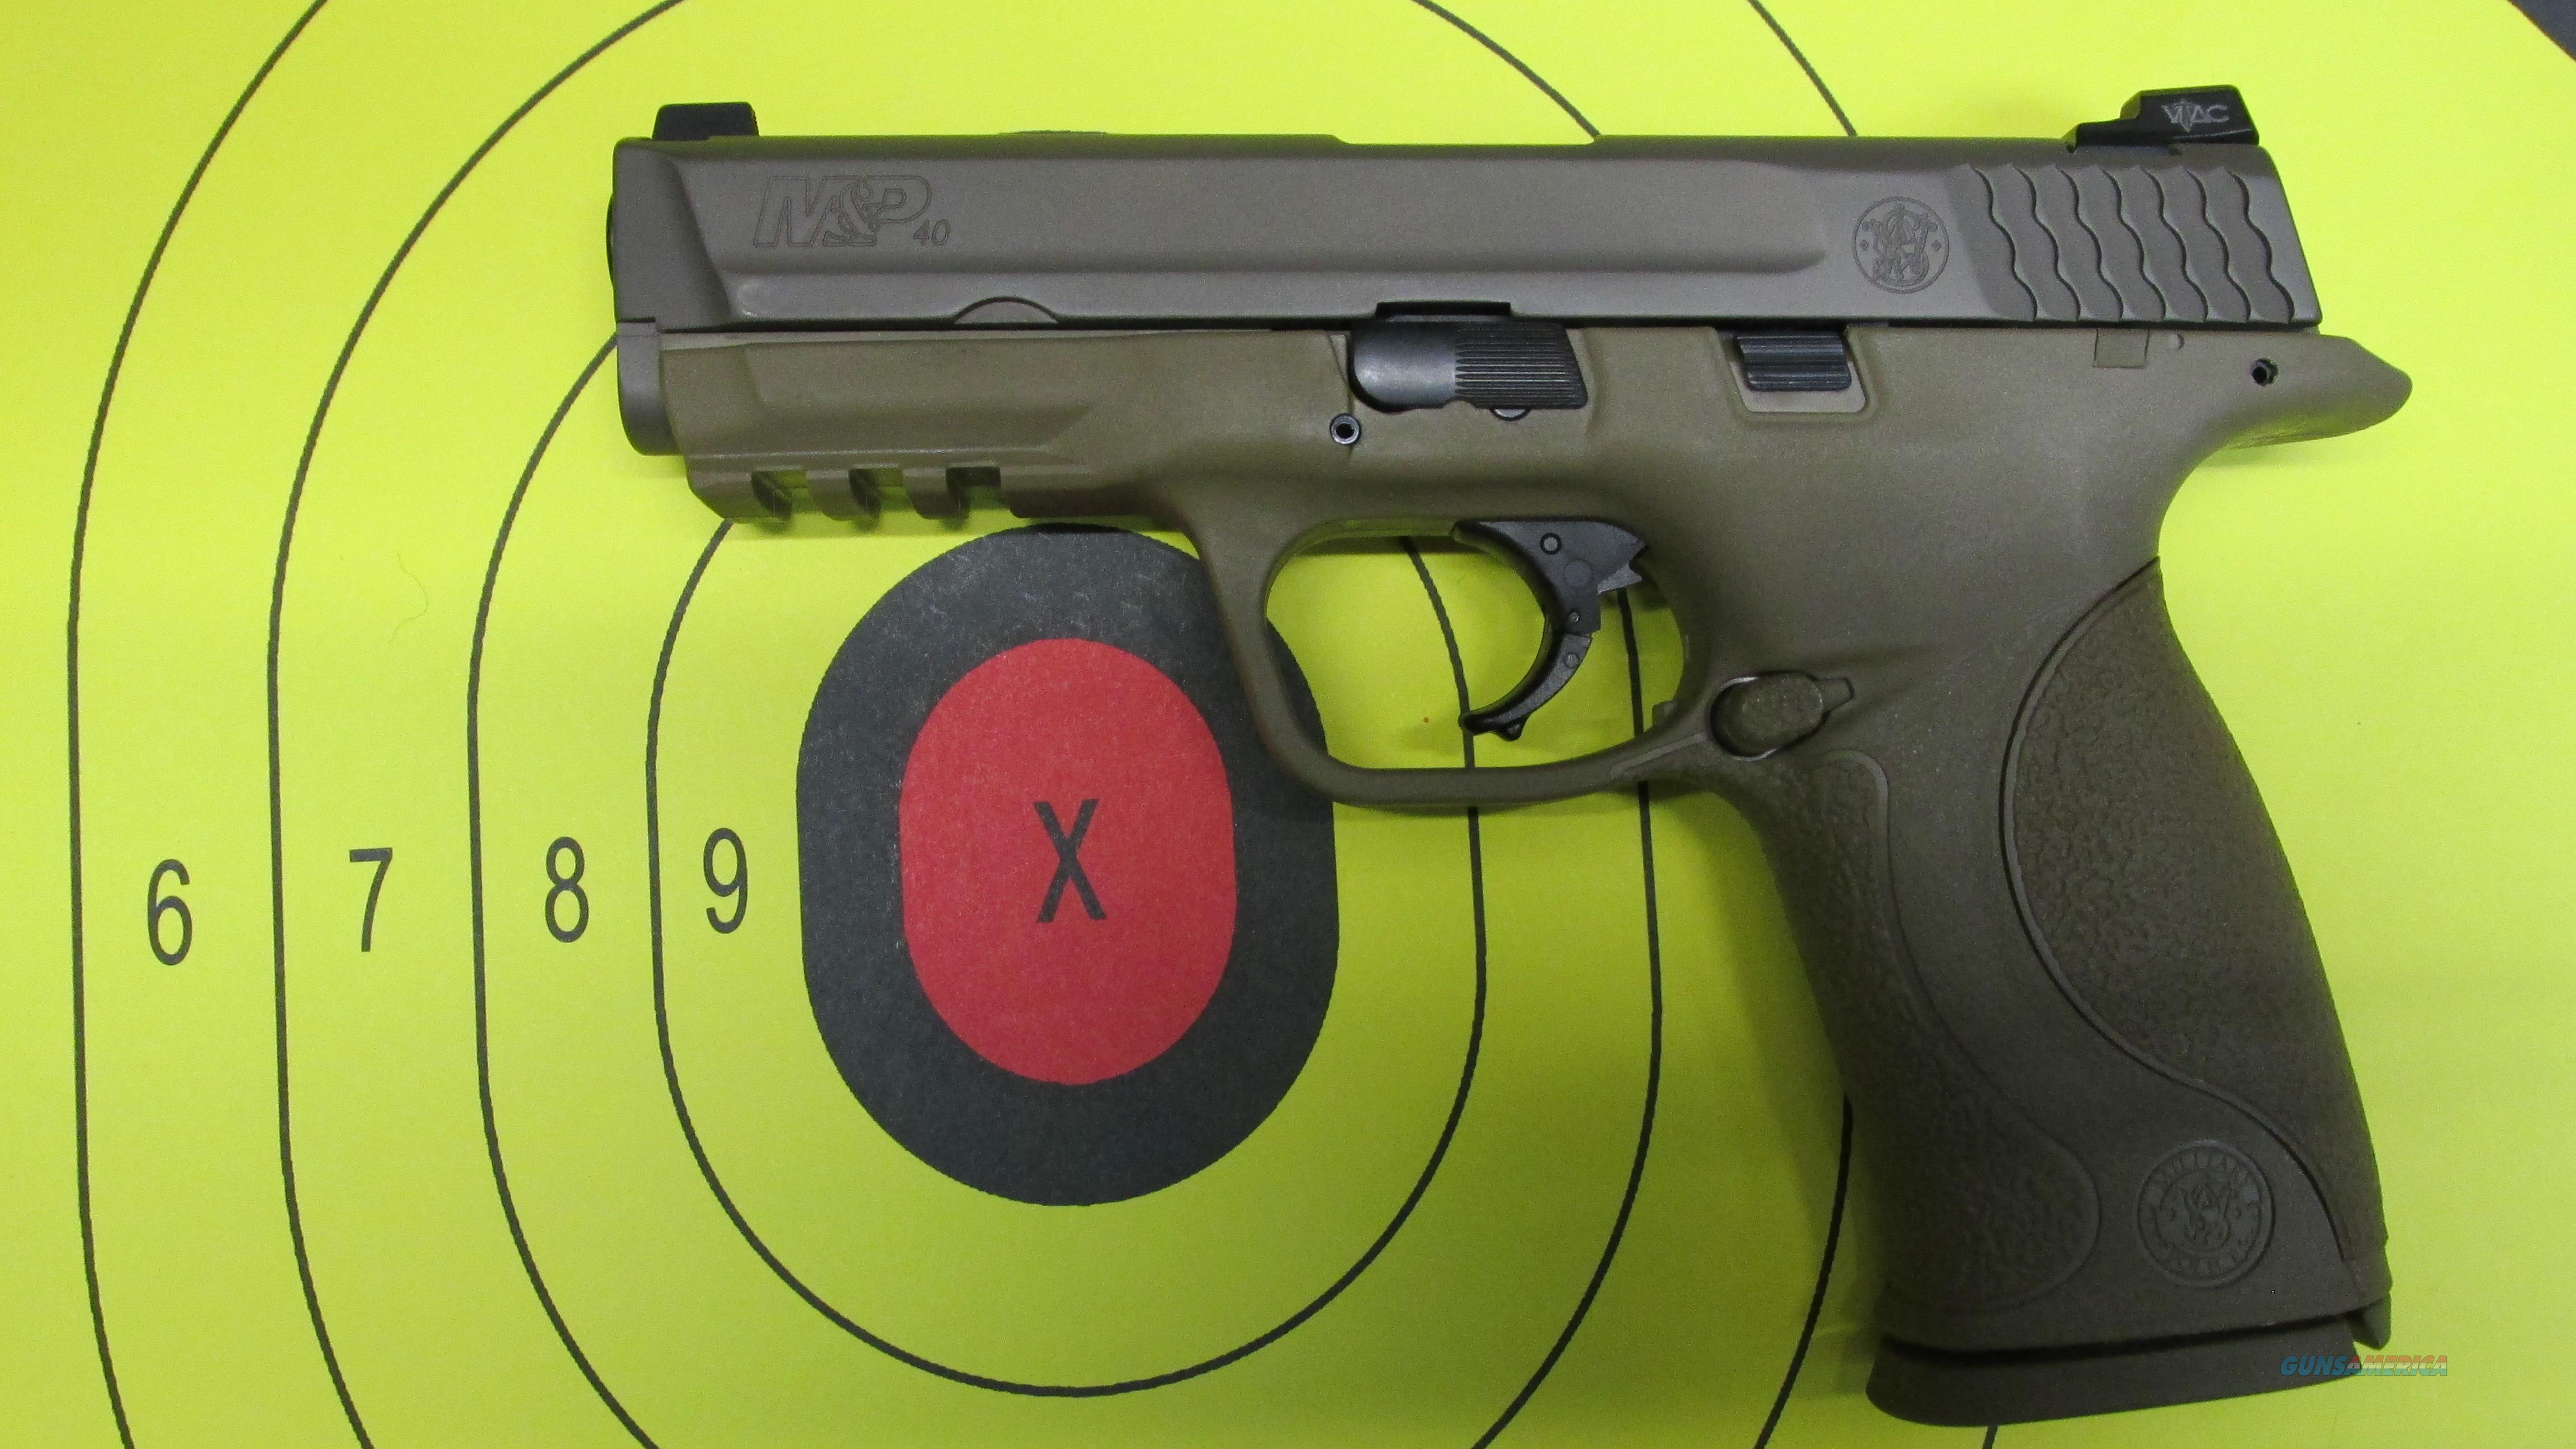 SMITH & WESSON M&P TAN VTAC 40 S&W PISTOL  Guns > Pistols > Smith & Wesson Pistols - Autos > Polymer Frame